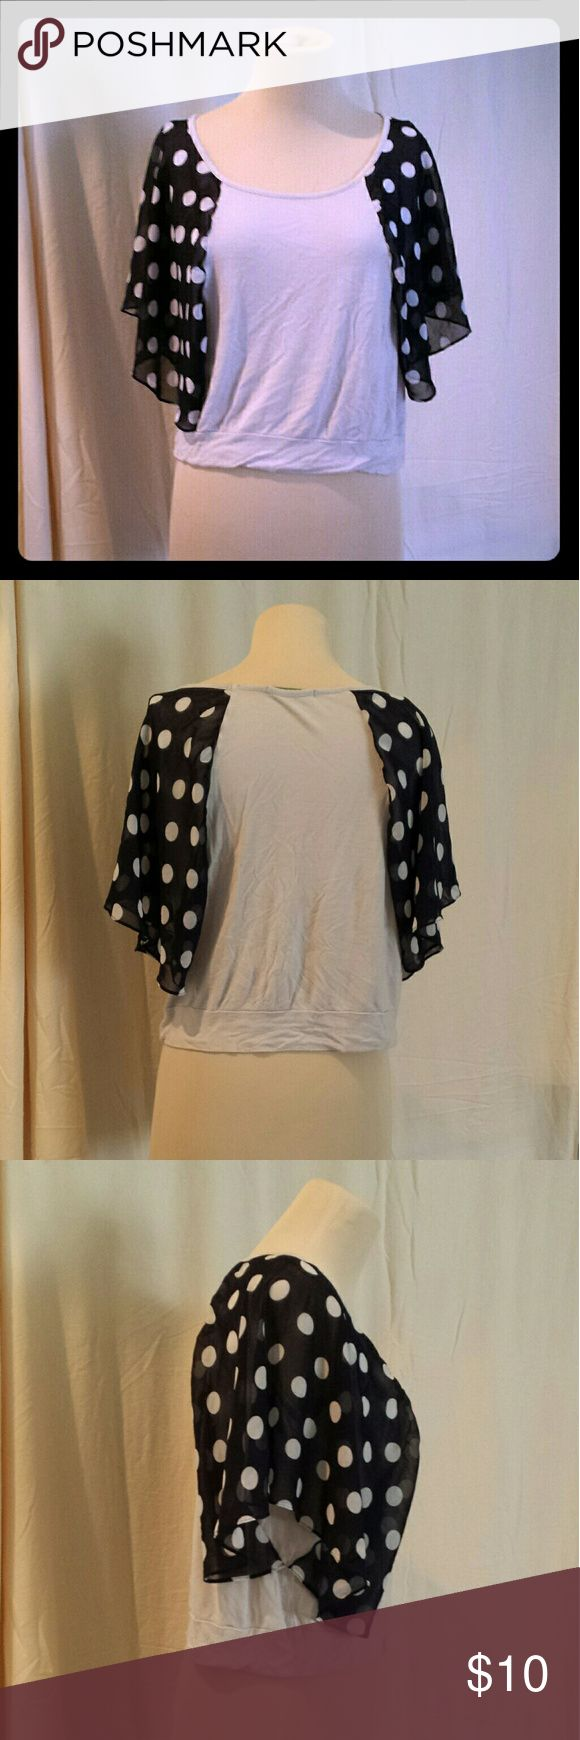 Polka Dot Flowy Dolman Top The grey part is very stretchy, and the navy is very flowy and partially see through.   Modeled on a medium mannequin,  so on a small it would be even more flowy!   Length: 20in Pit to pit laying flat: 20in  Waist laying flat: 20in  Bottom laying flat: 20in   #polkadots #dots #grey #gray #blue #white #blueandwhite #Dolman #stretchy #comfy #spring #summer #loose #soft #airy #flowy #anytime #seethrough #navy #navyblue #chiffon #knit #Blouse Inspired Tops Blouses